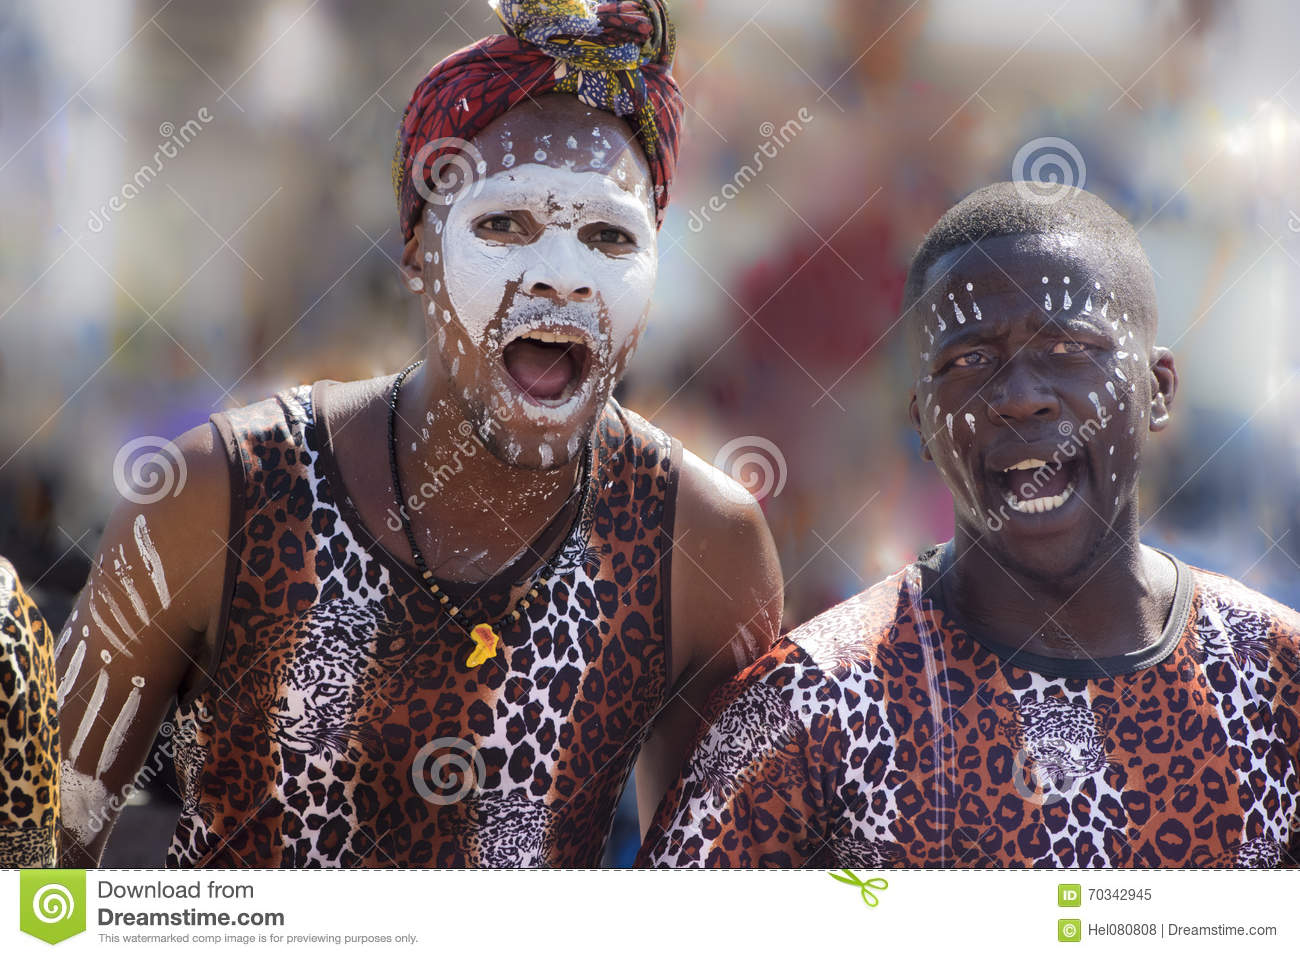 African Dancers, African band, singing and dancing